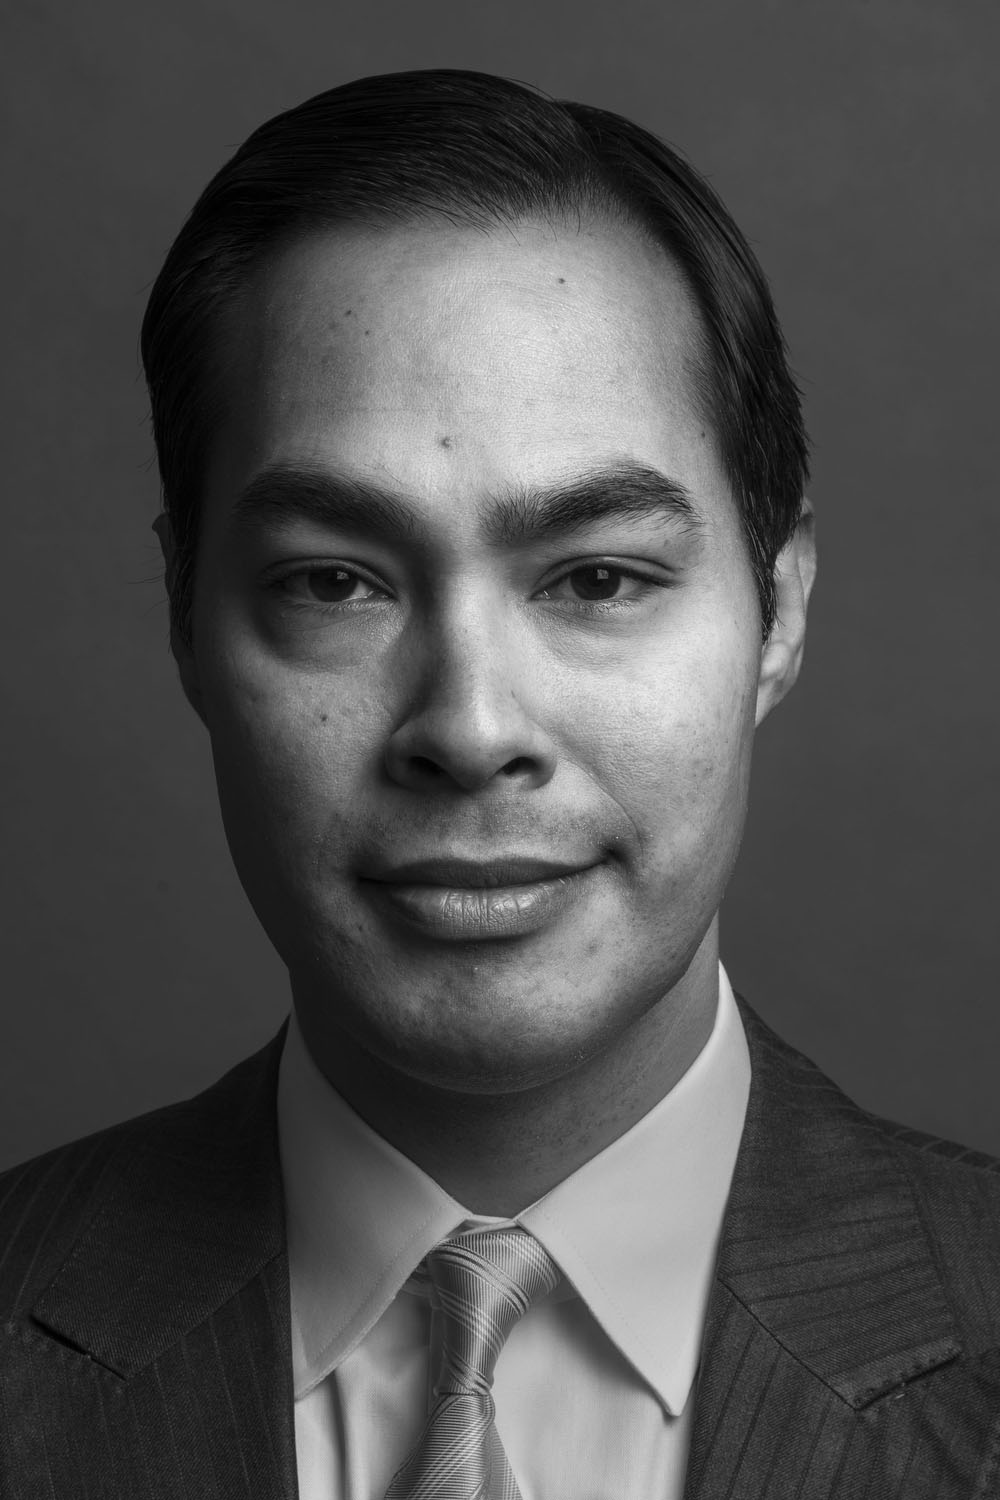 Julian Castro Former United States Secretary of Housing and Urban Development